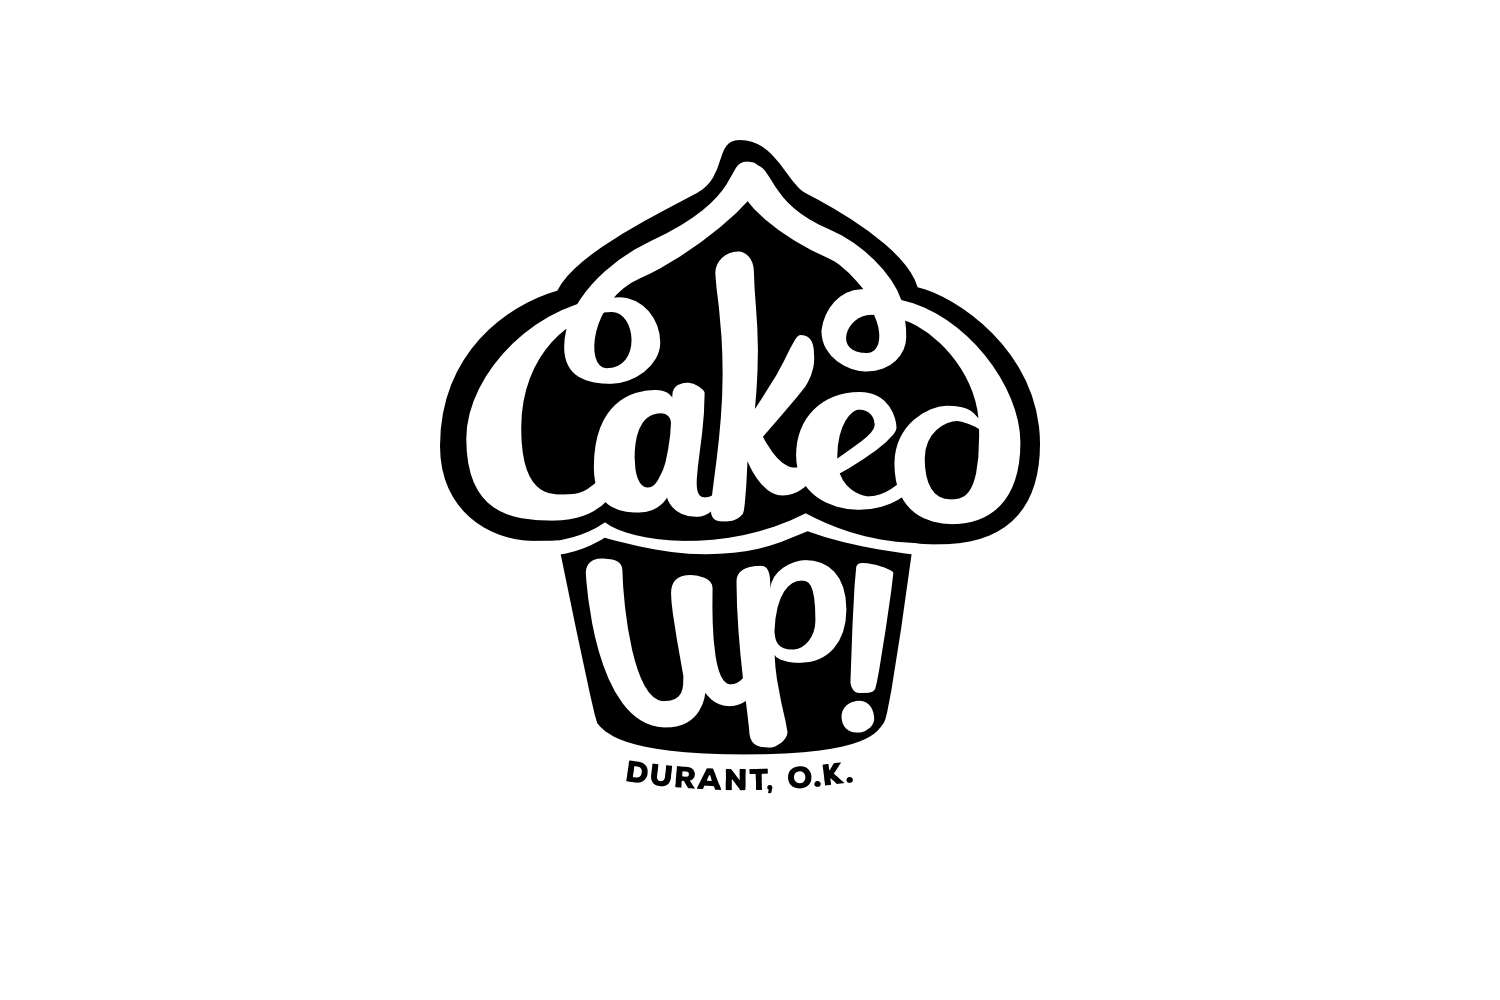 """Logo: """"Caked Up! Durant"""" – http://pacificletters.com/news/branding-design-caked-up-durant"""